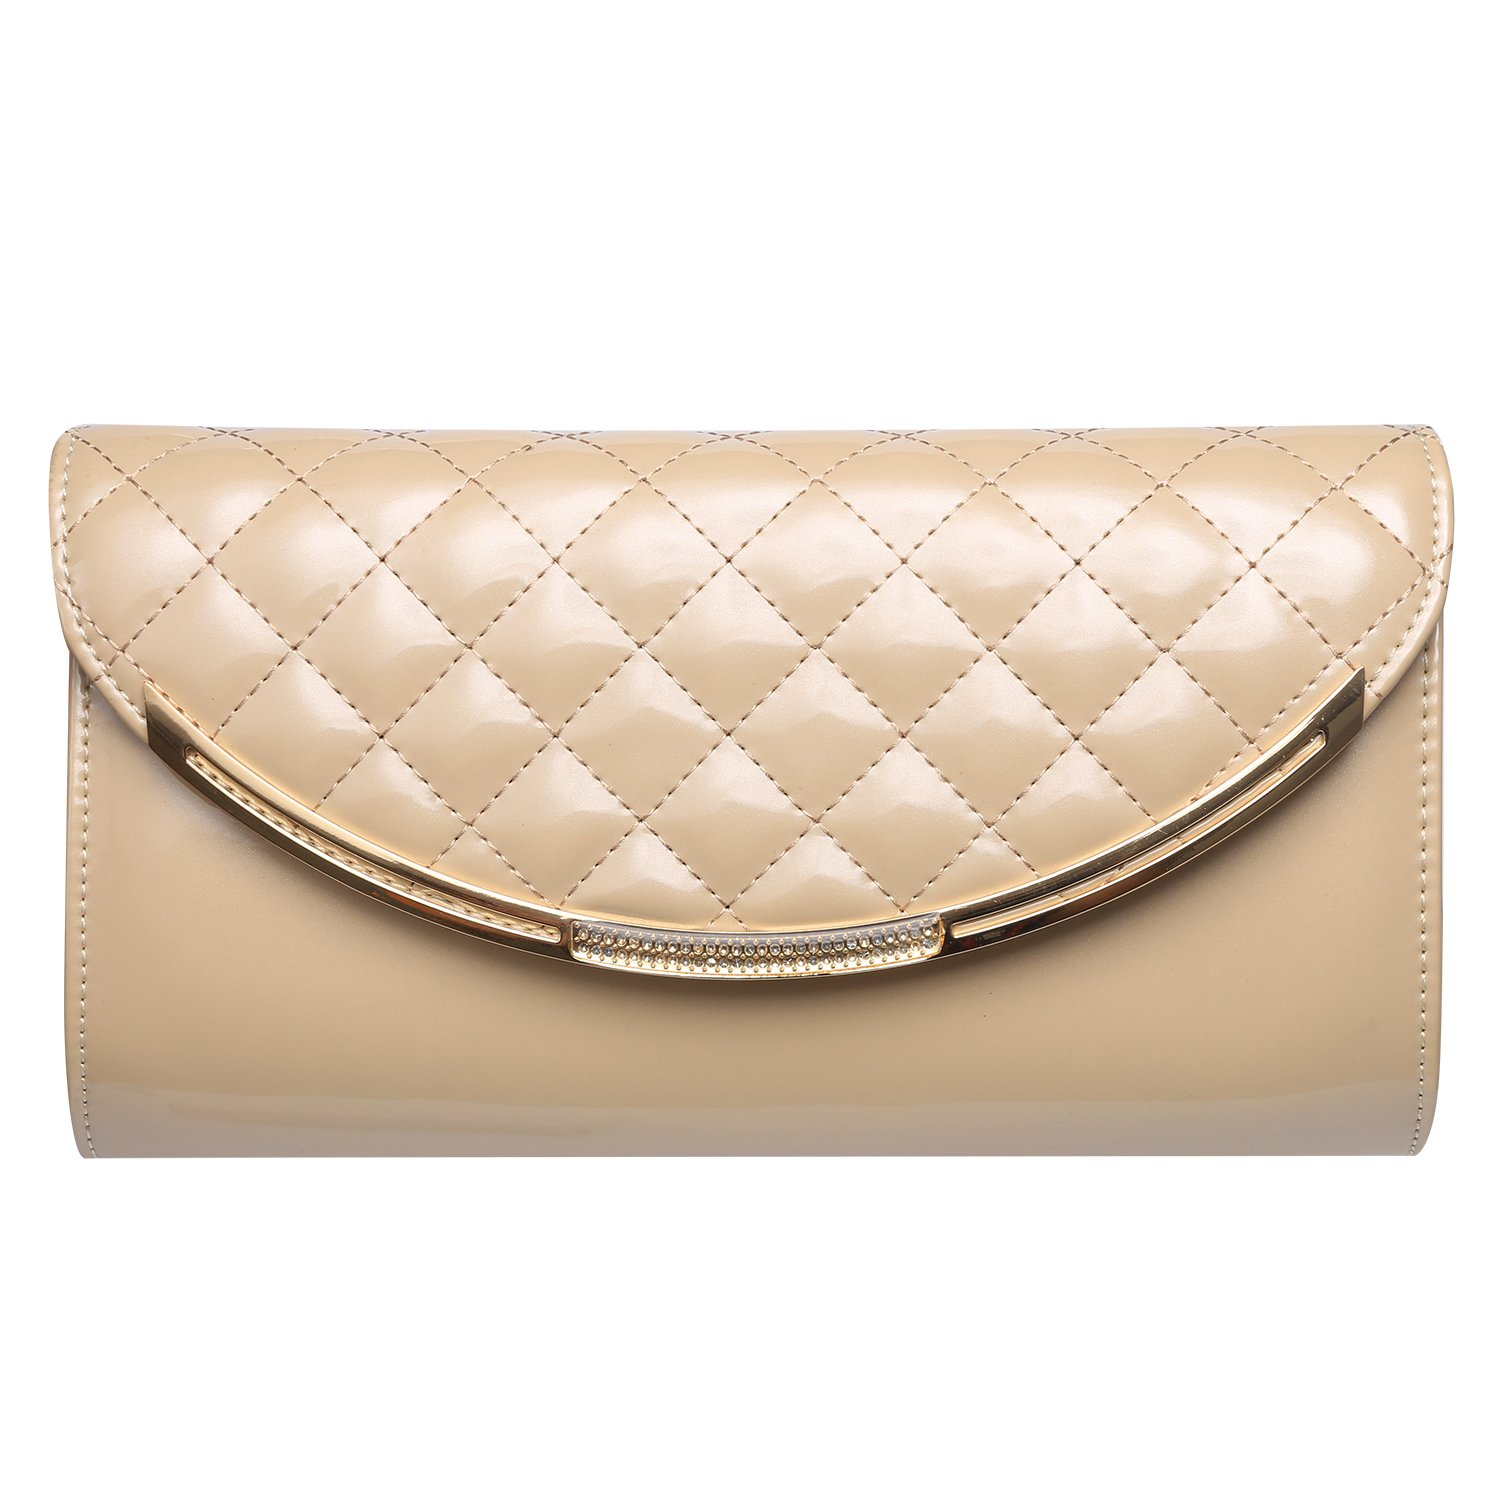 Womens Faux Patent Leather Clutch Handbag Evening Bag Shoulder Bag For Wedding and Party,beige